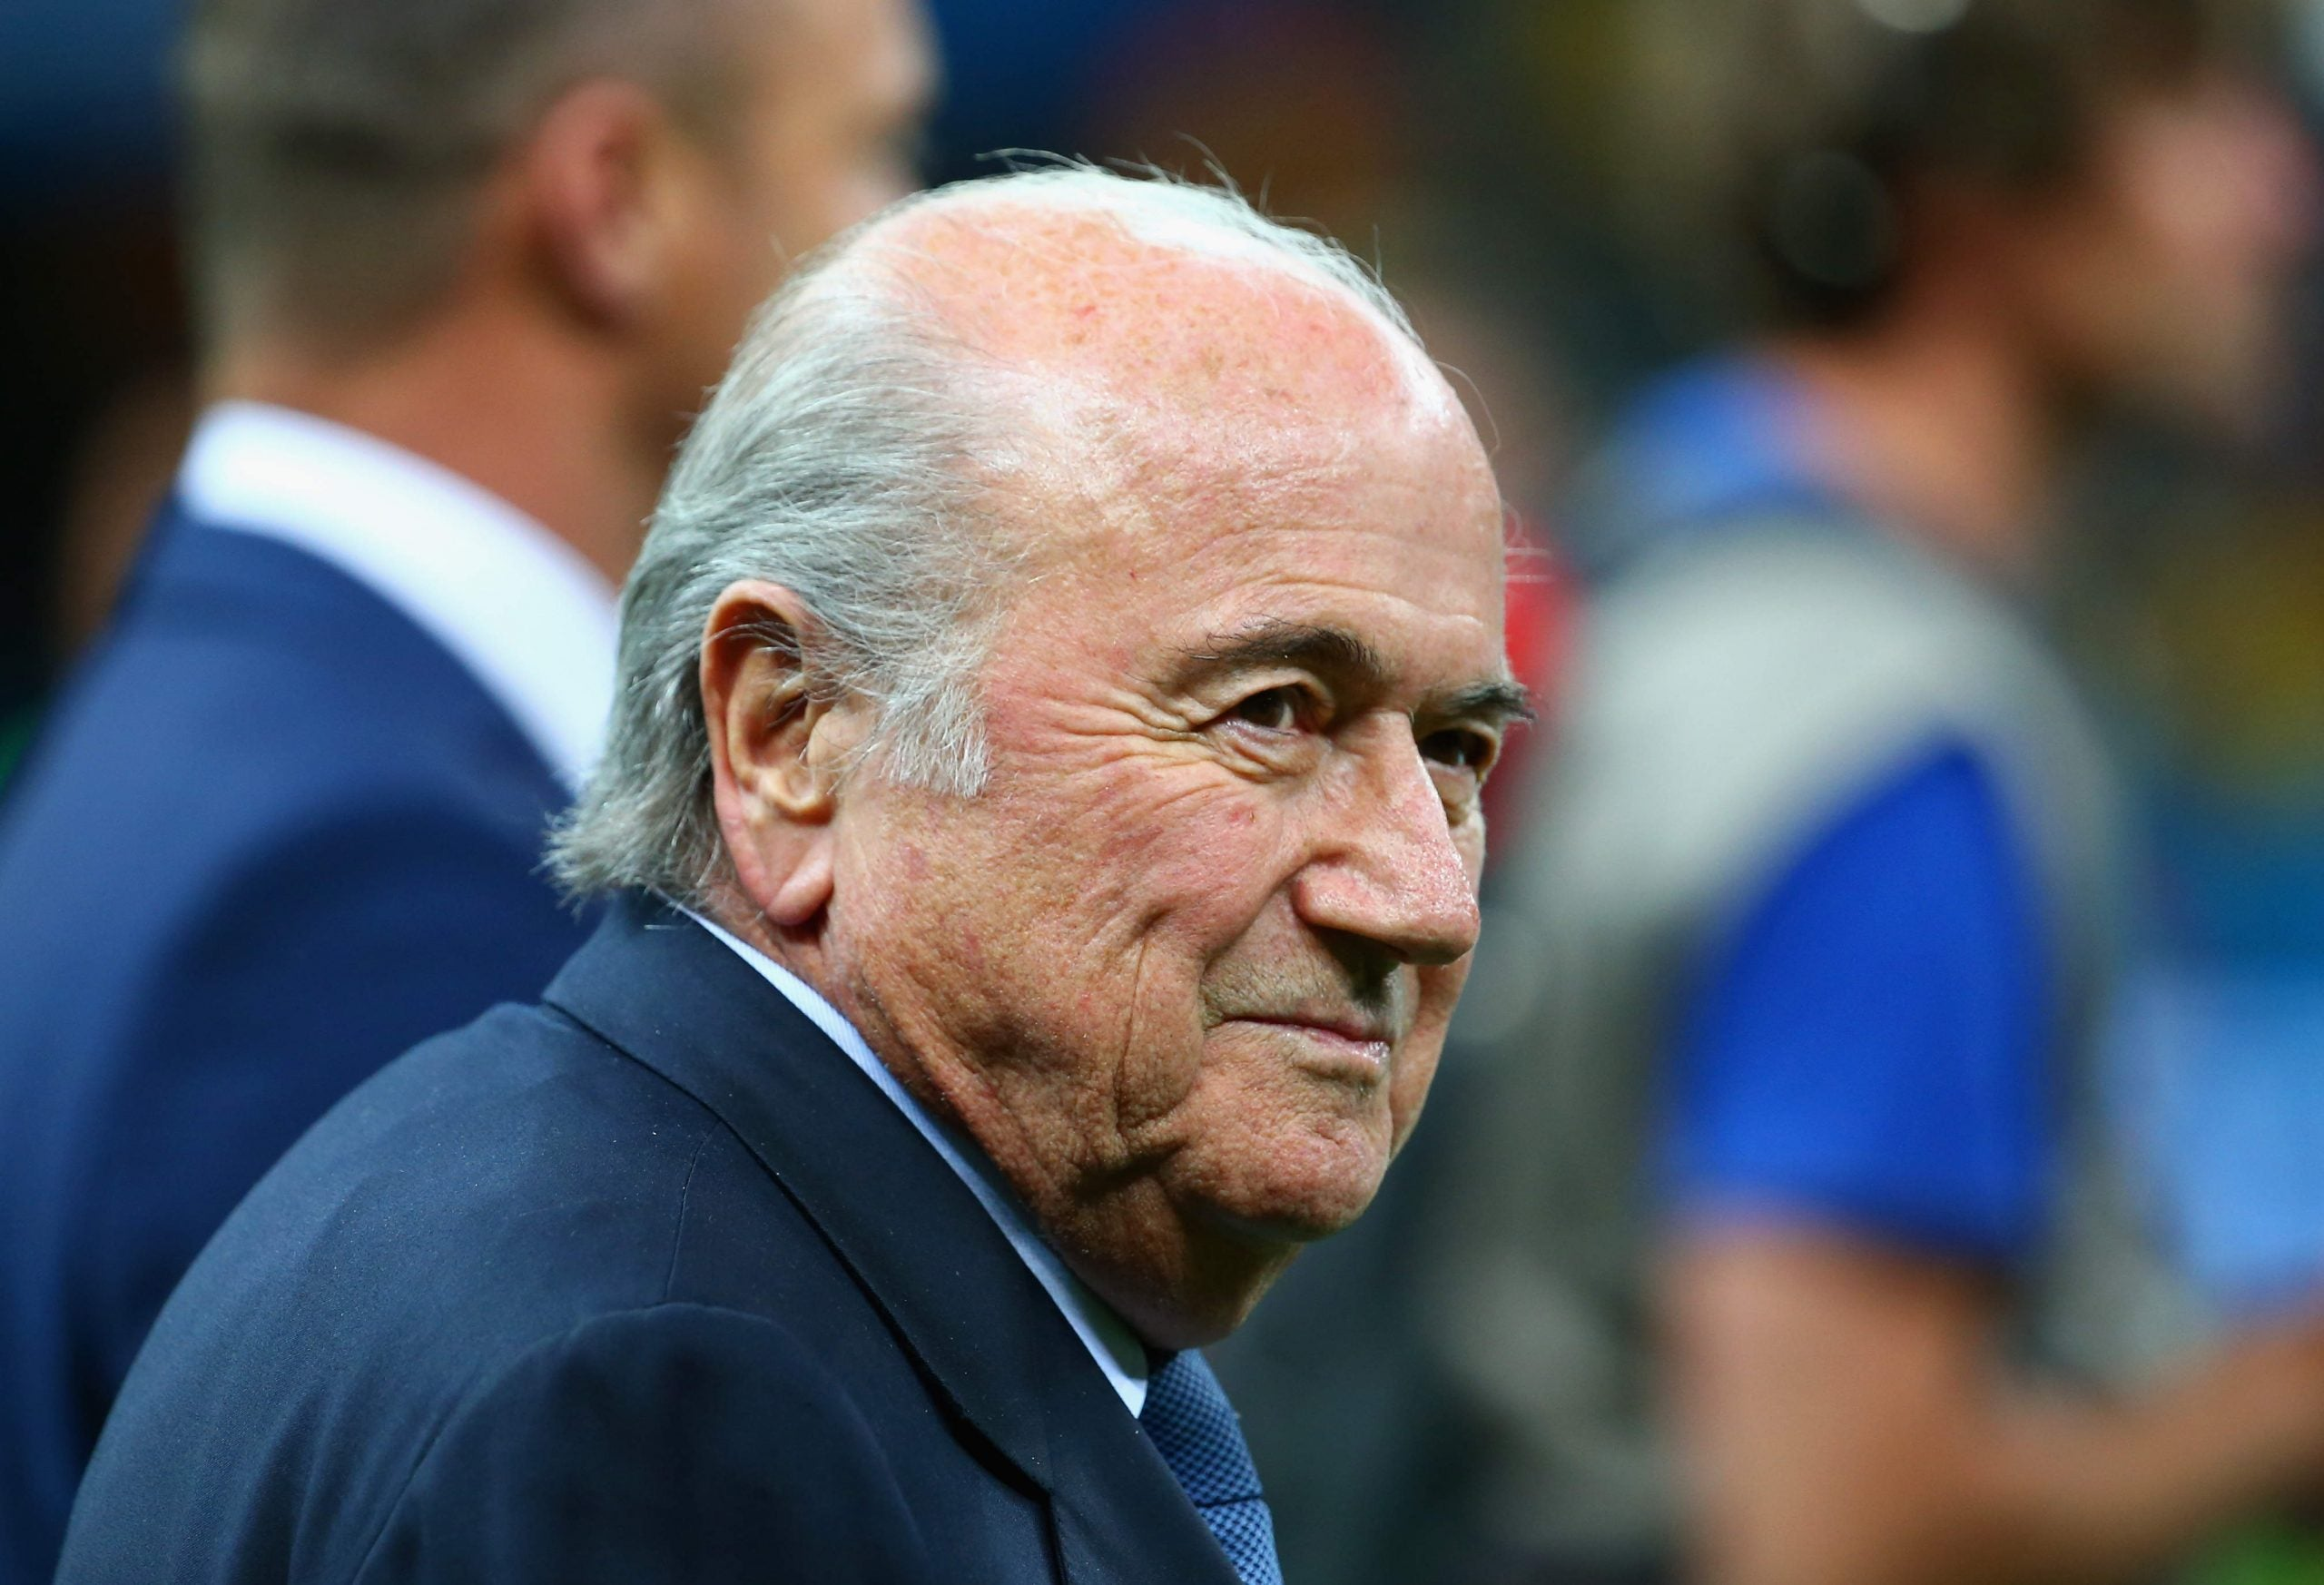 Sepp Blatter re-elected as Fifa president amid corruption allegations